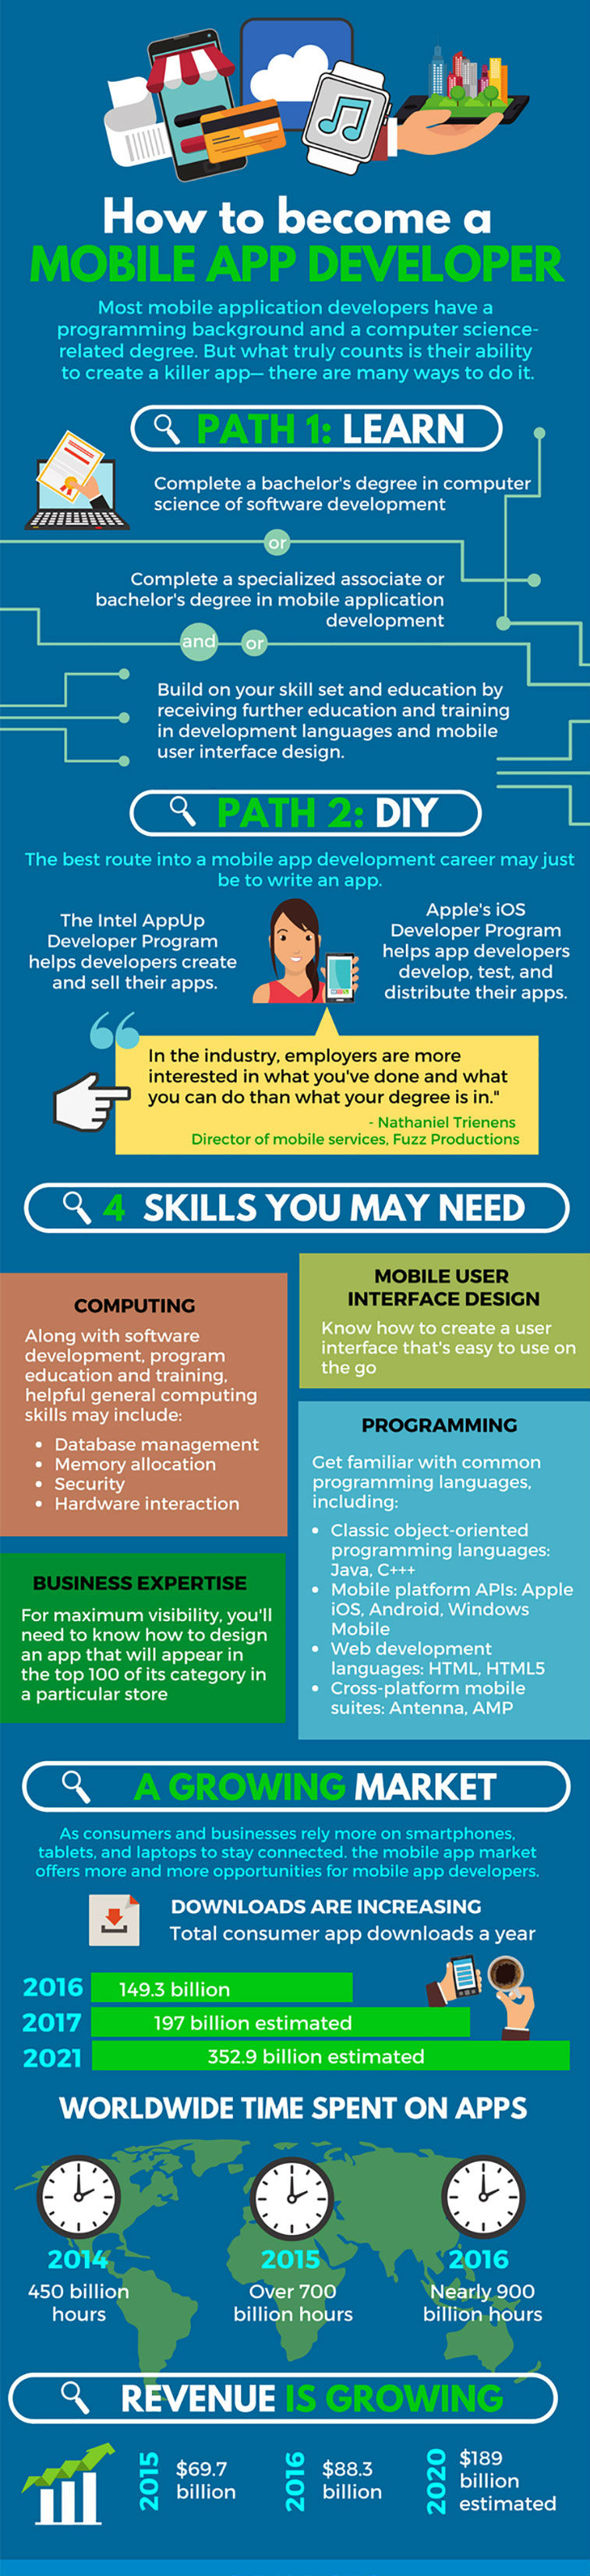 infographic for mobile app developer